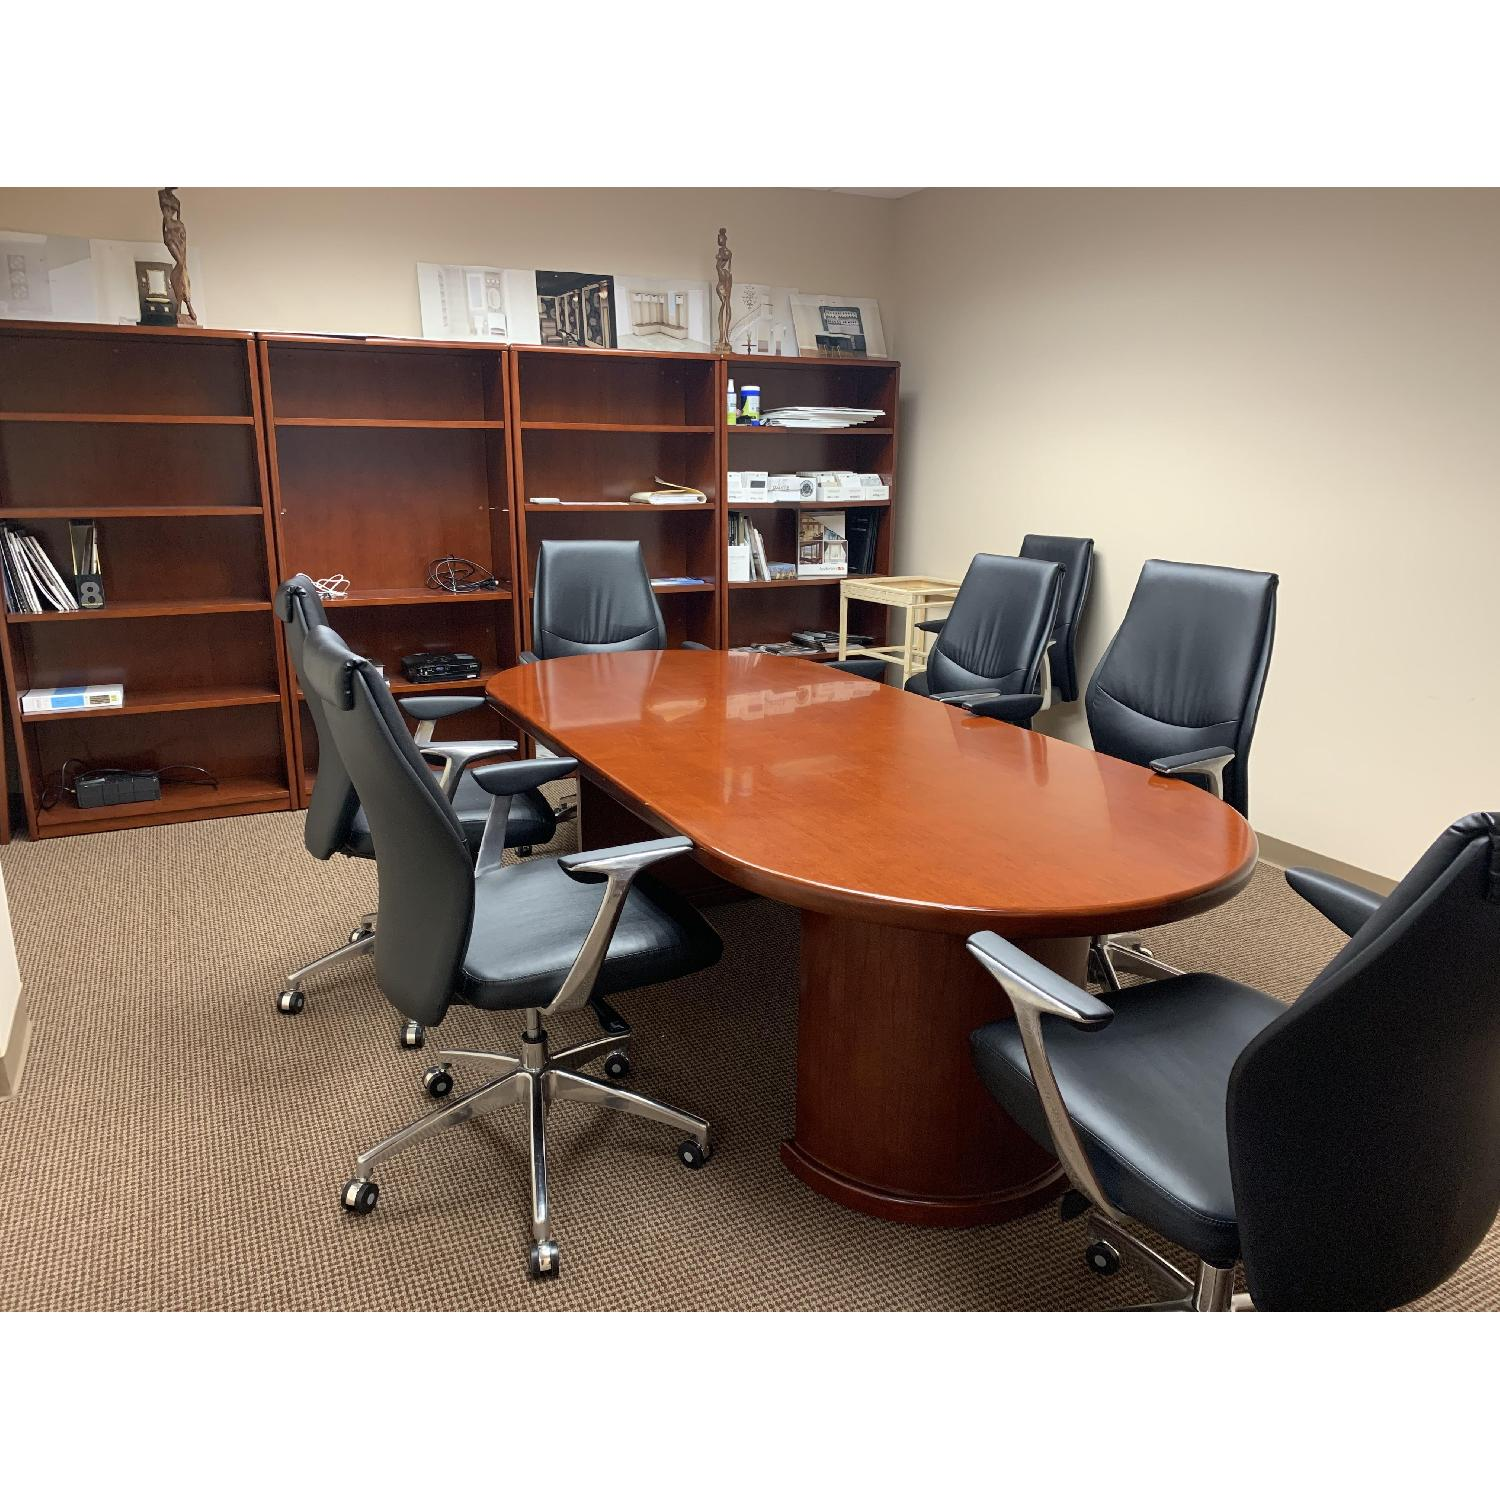 Conference Table w/ 6 Chairs - image-2